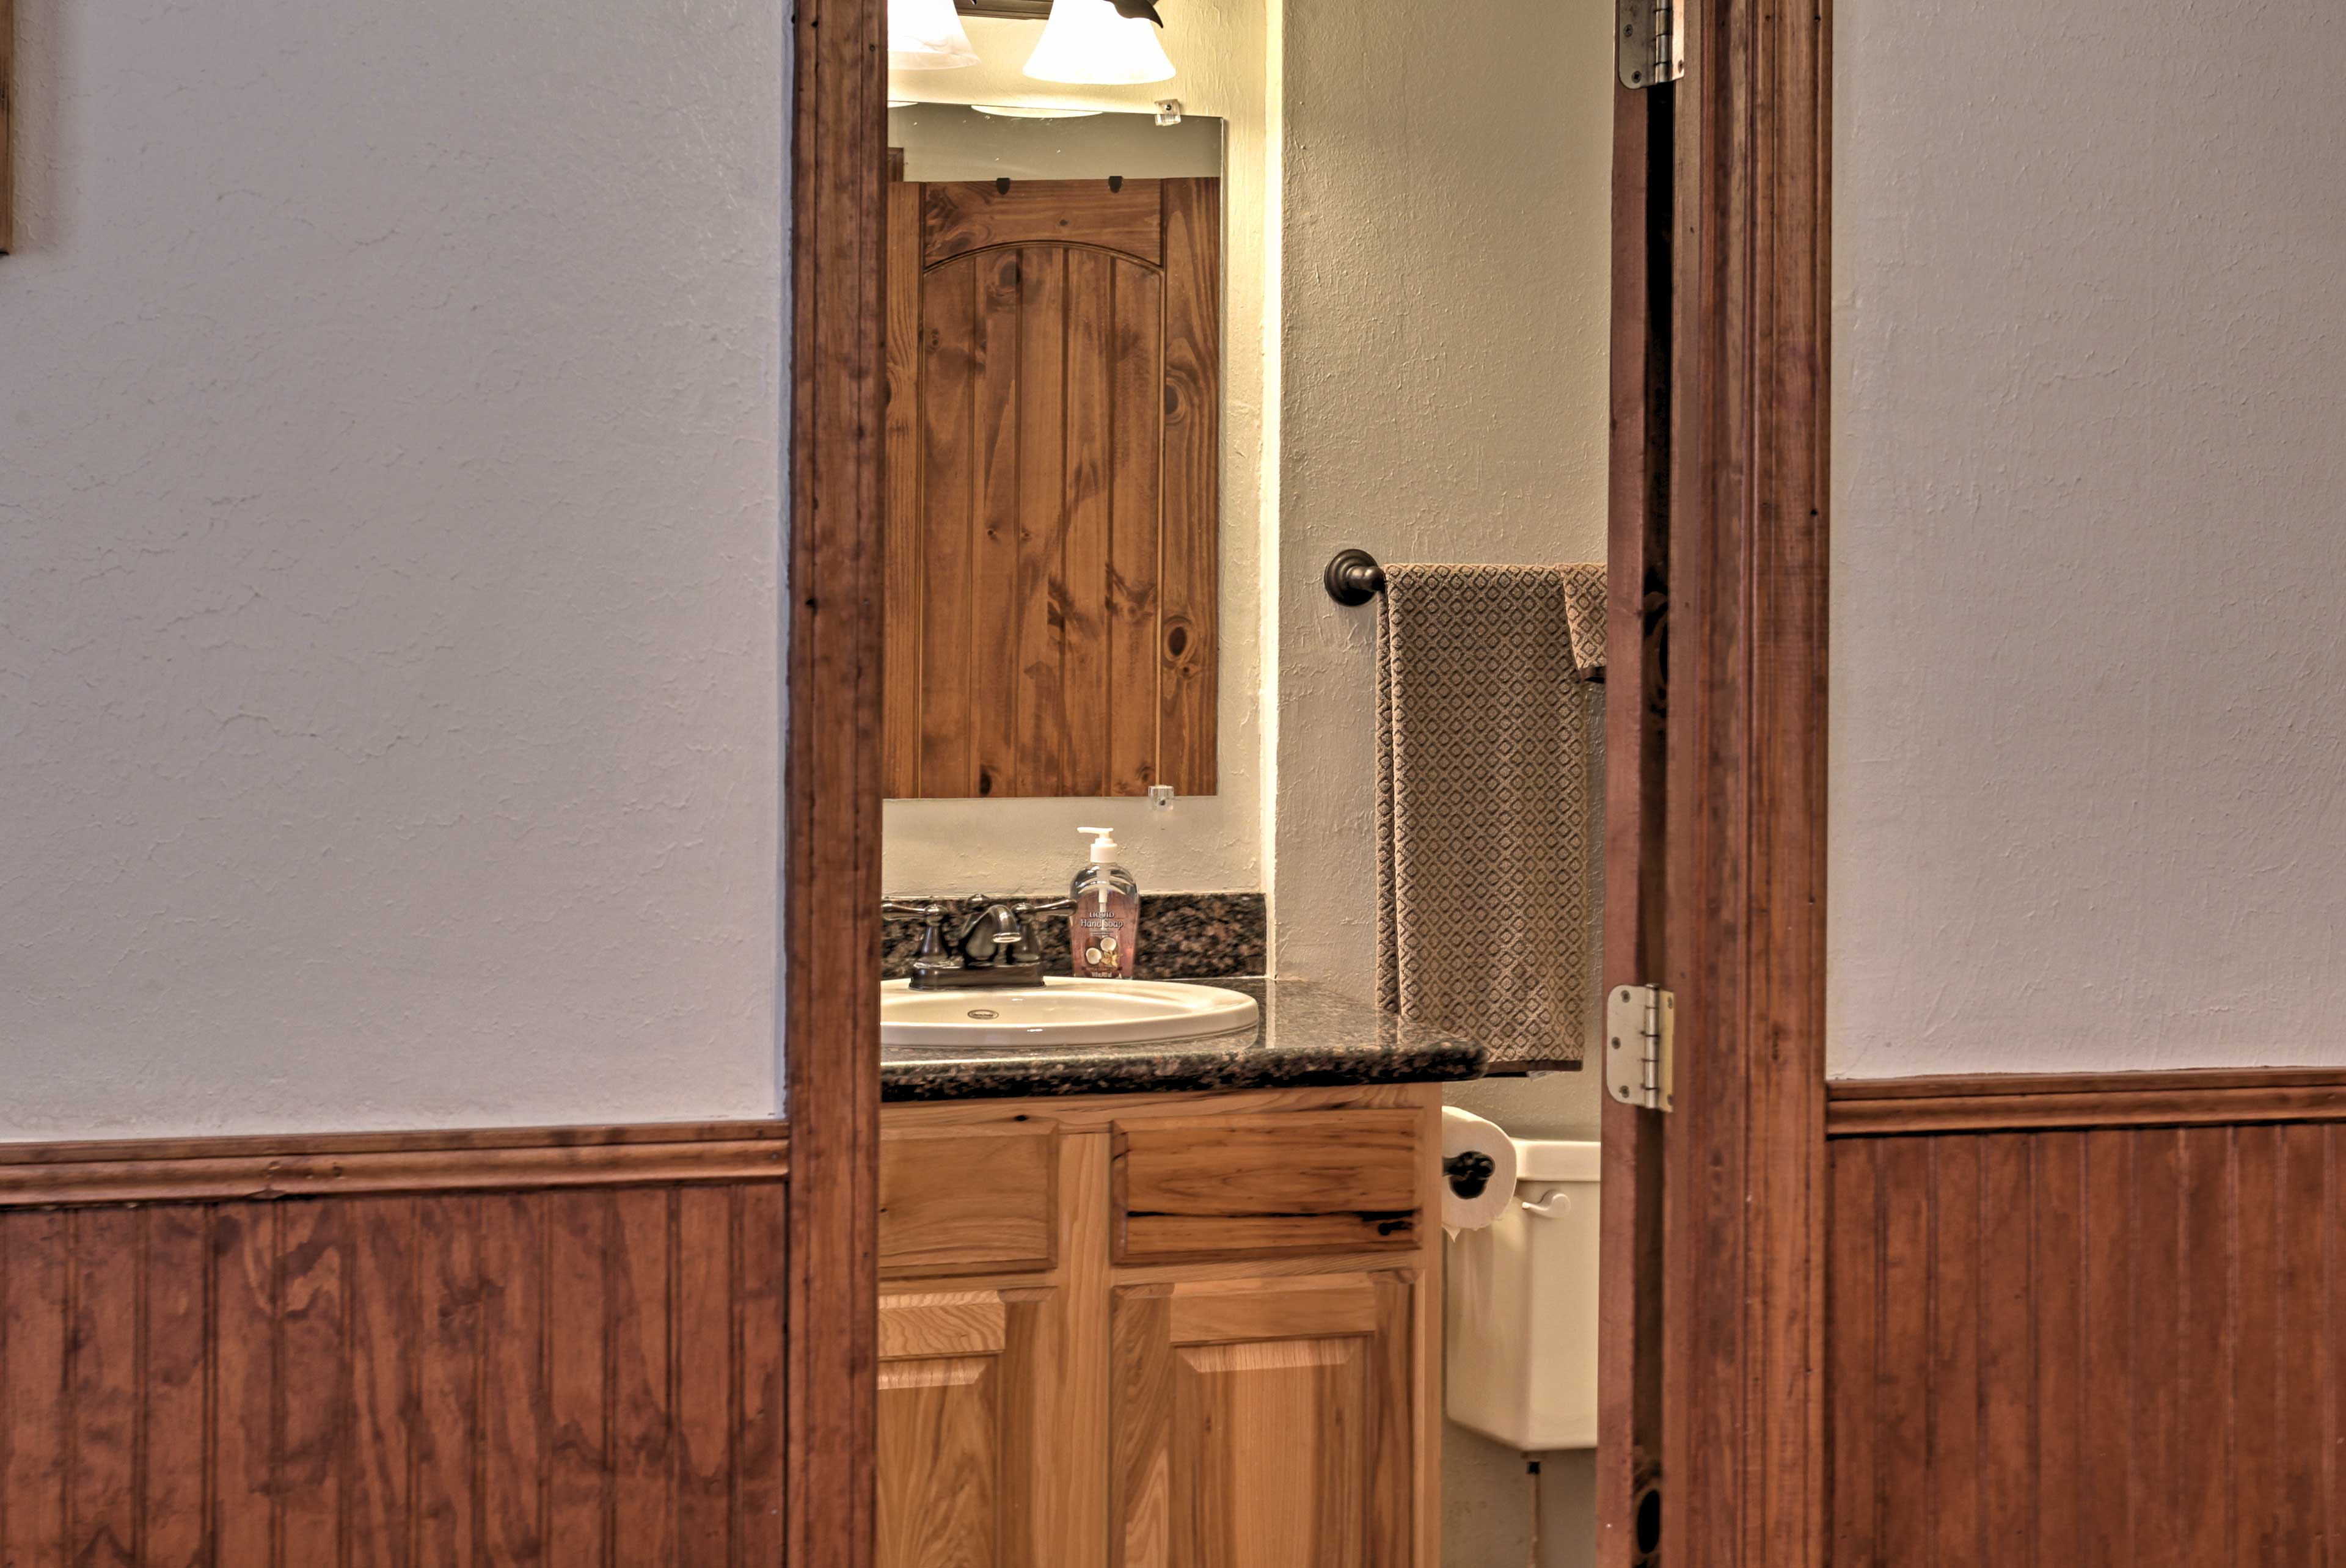 Conveniently located near the kitchen, guests can easily wash up for dinner!